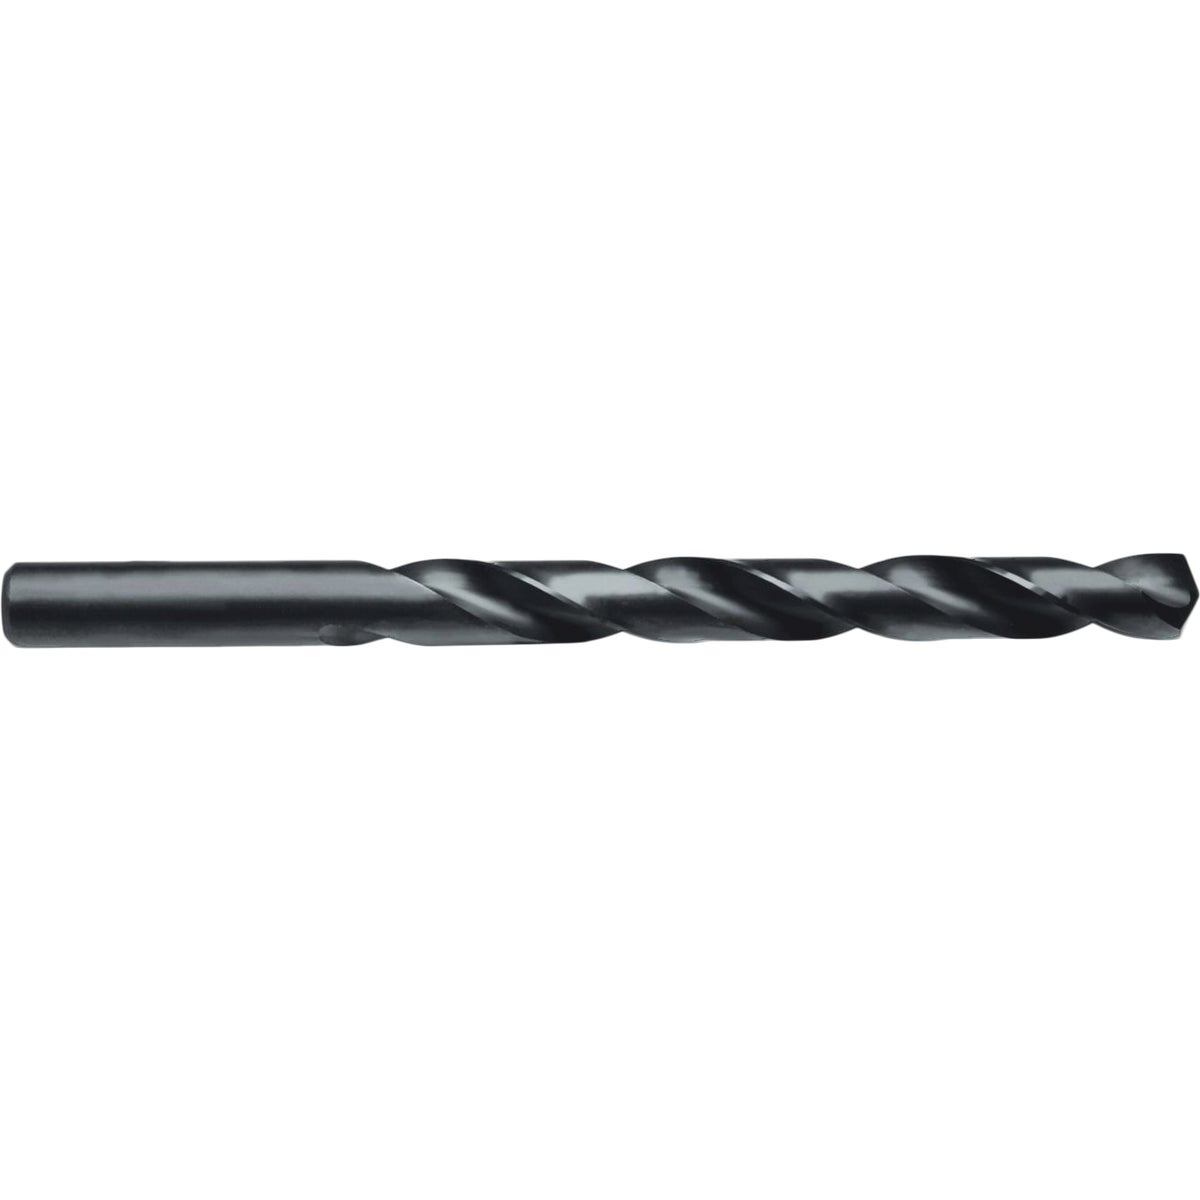 "3/16"" BLACK OXIDE BIT - DW1112 by DeWalt"